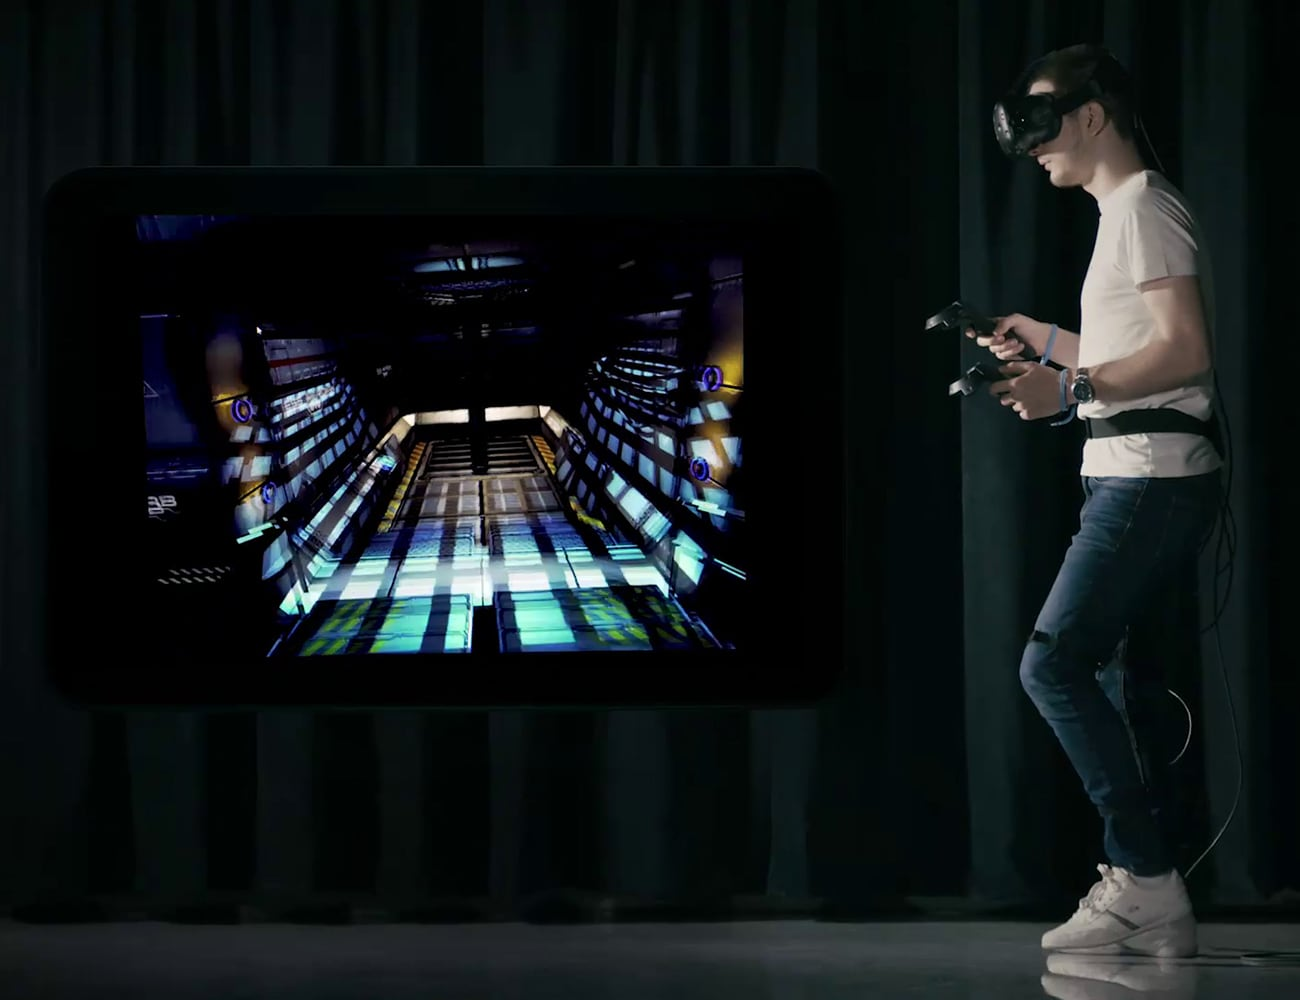 WalkOVR Wearable Motion Tracking System lets you interact with the virtual world